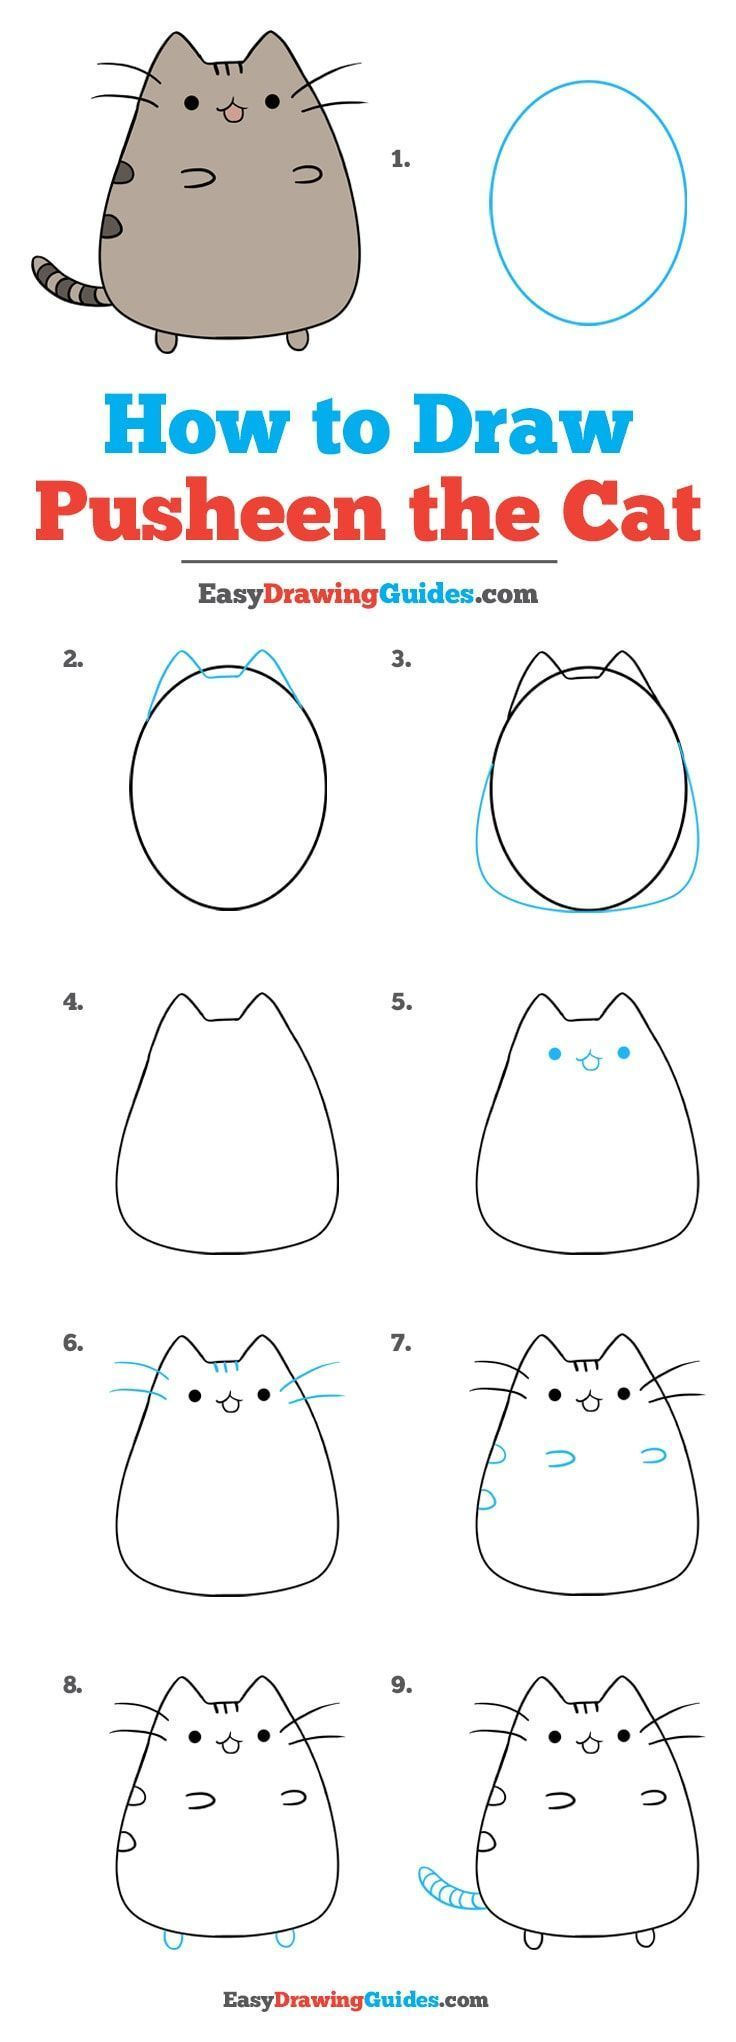 How to Draw Pusheen the Cat